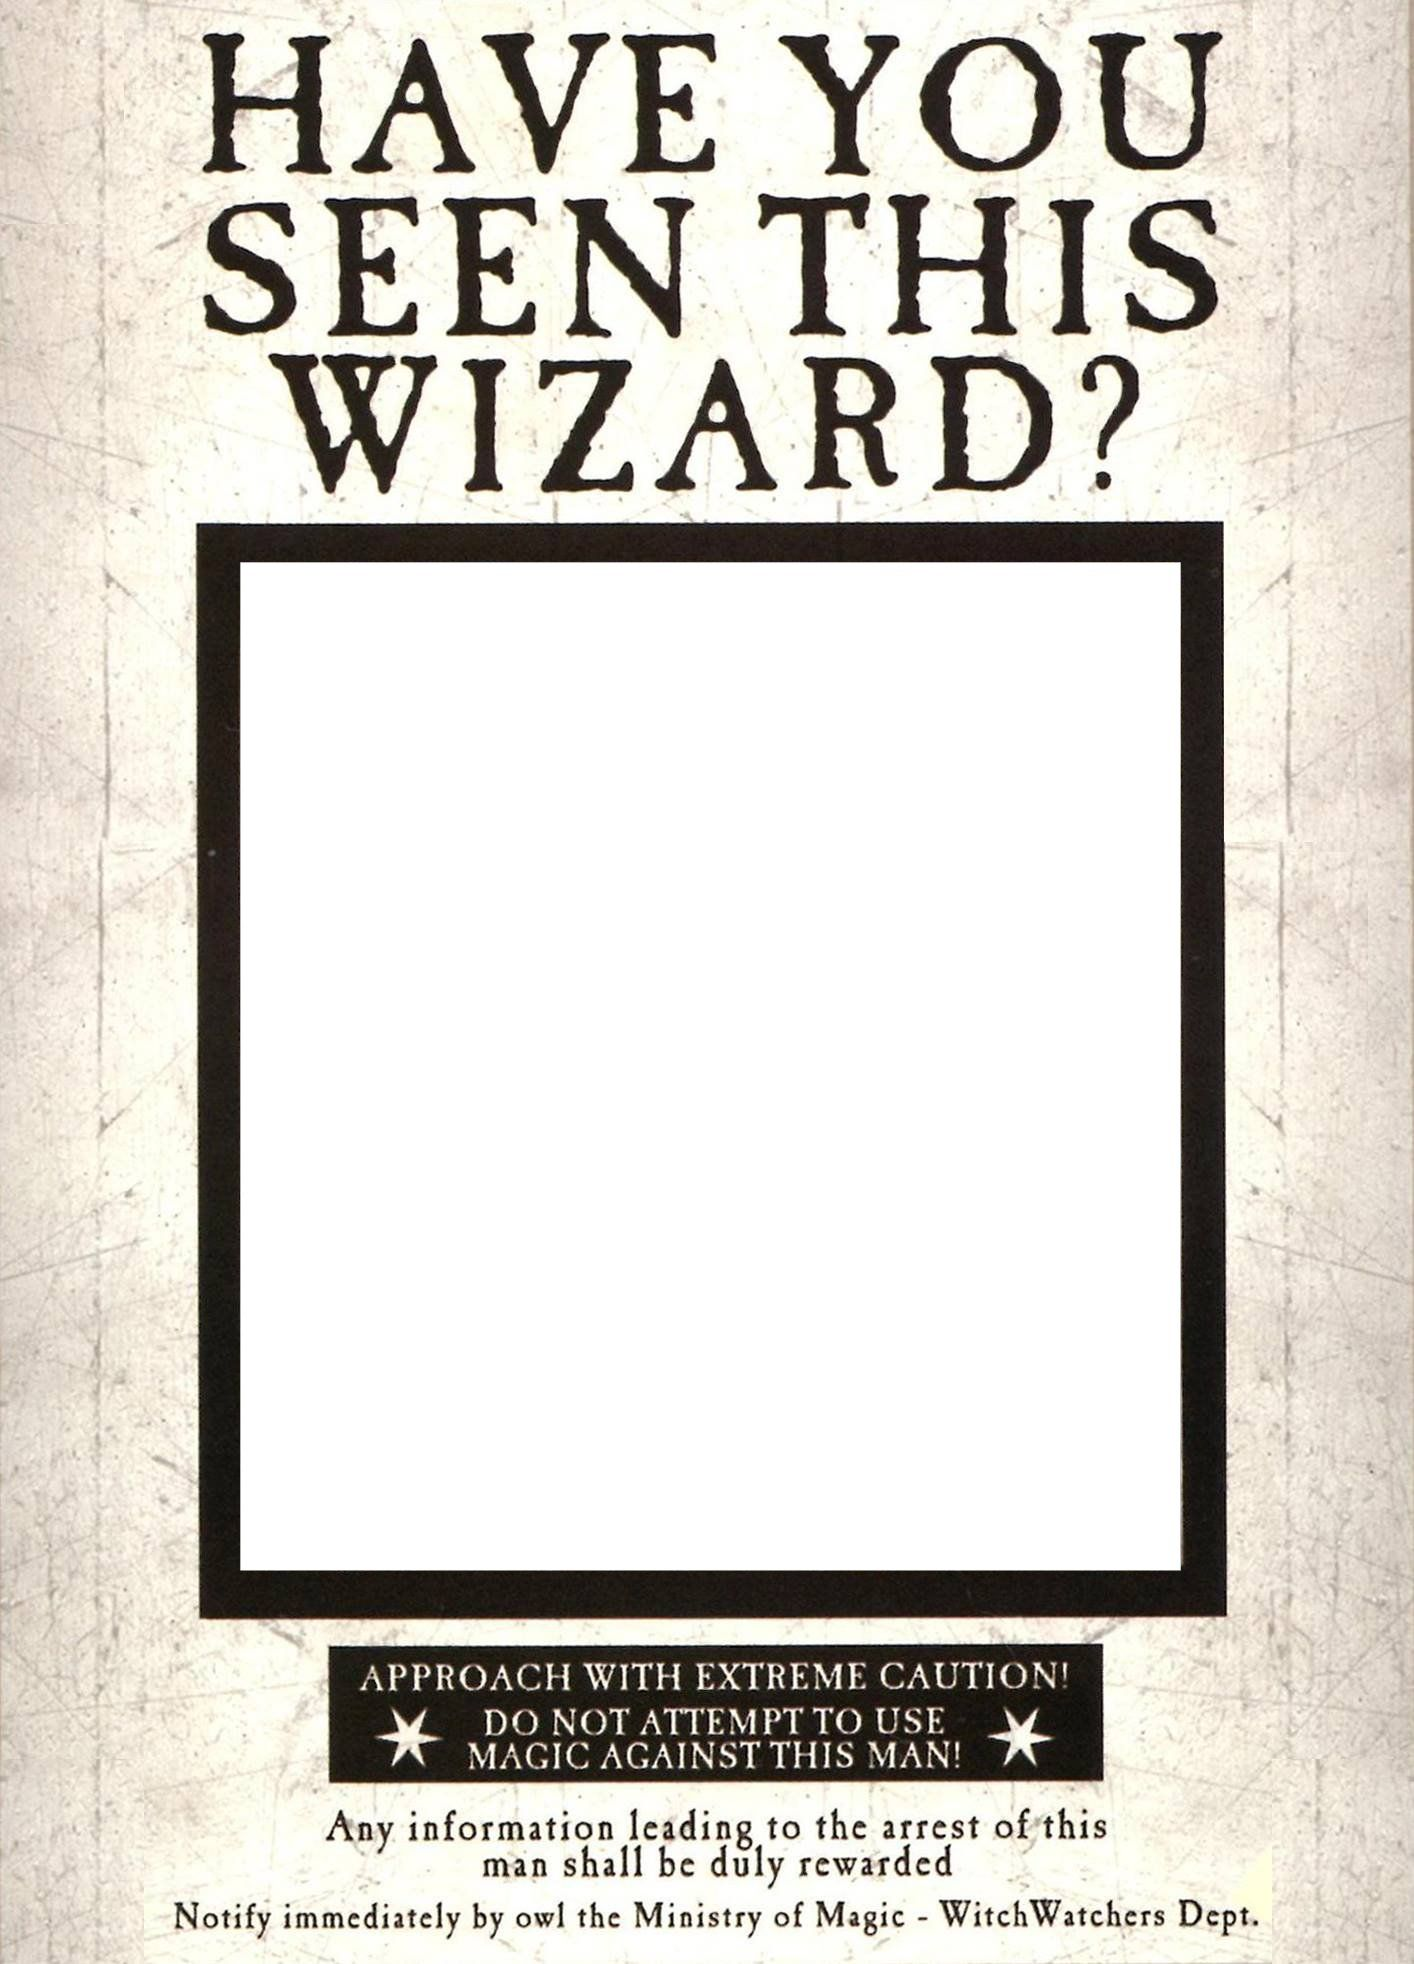 graphic regarding Have You Seen This Wizard Printable called Pin upon Harry Potter